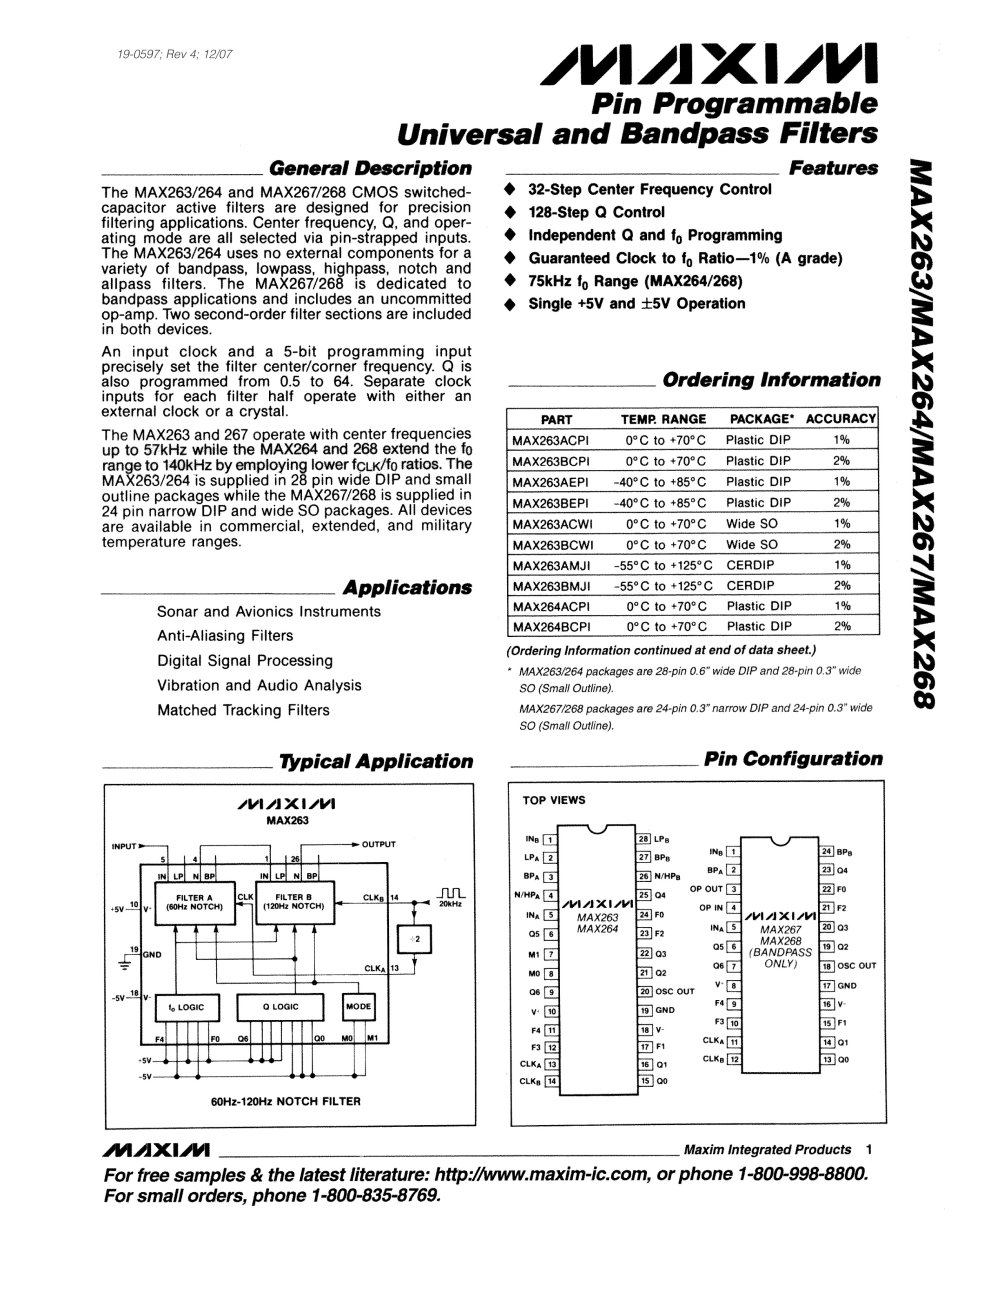 Max263 Max264 Max267 Max268 Pin Programmable Universal And Notch Filter Circuit Diagram Bandpass Filters 1 28 Pages